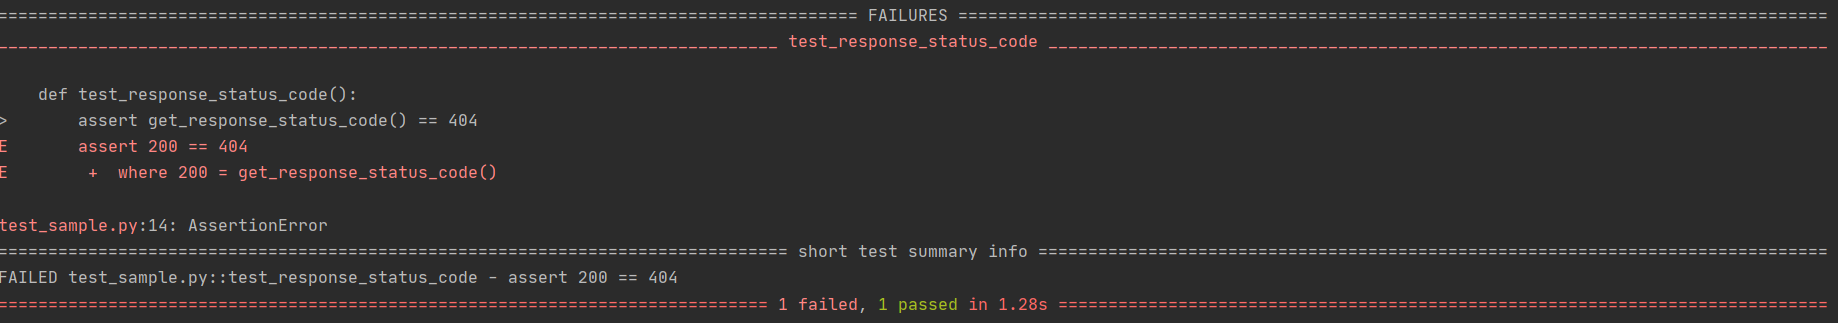 PyTest Results - Failure